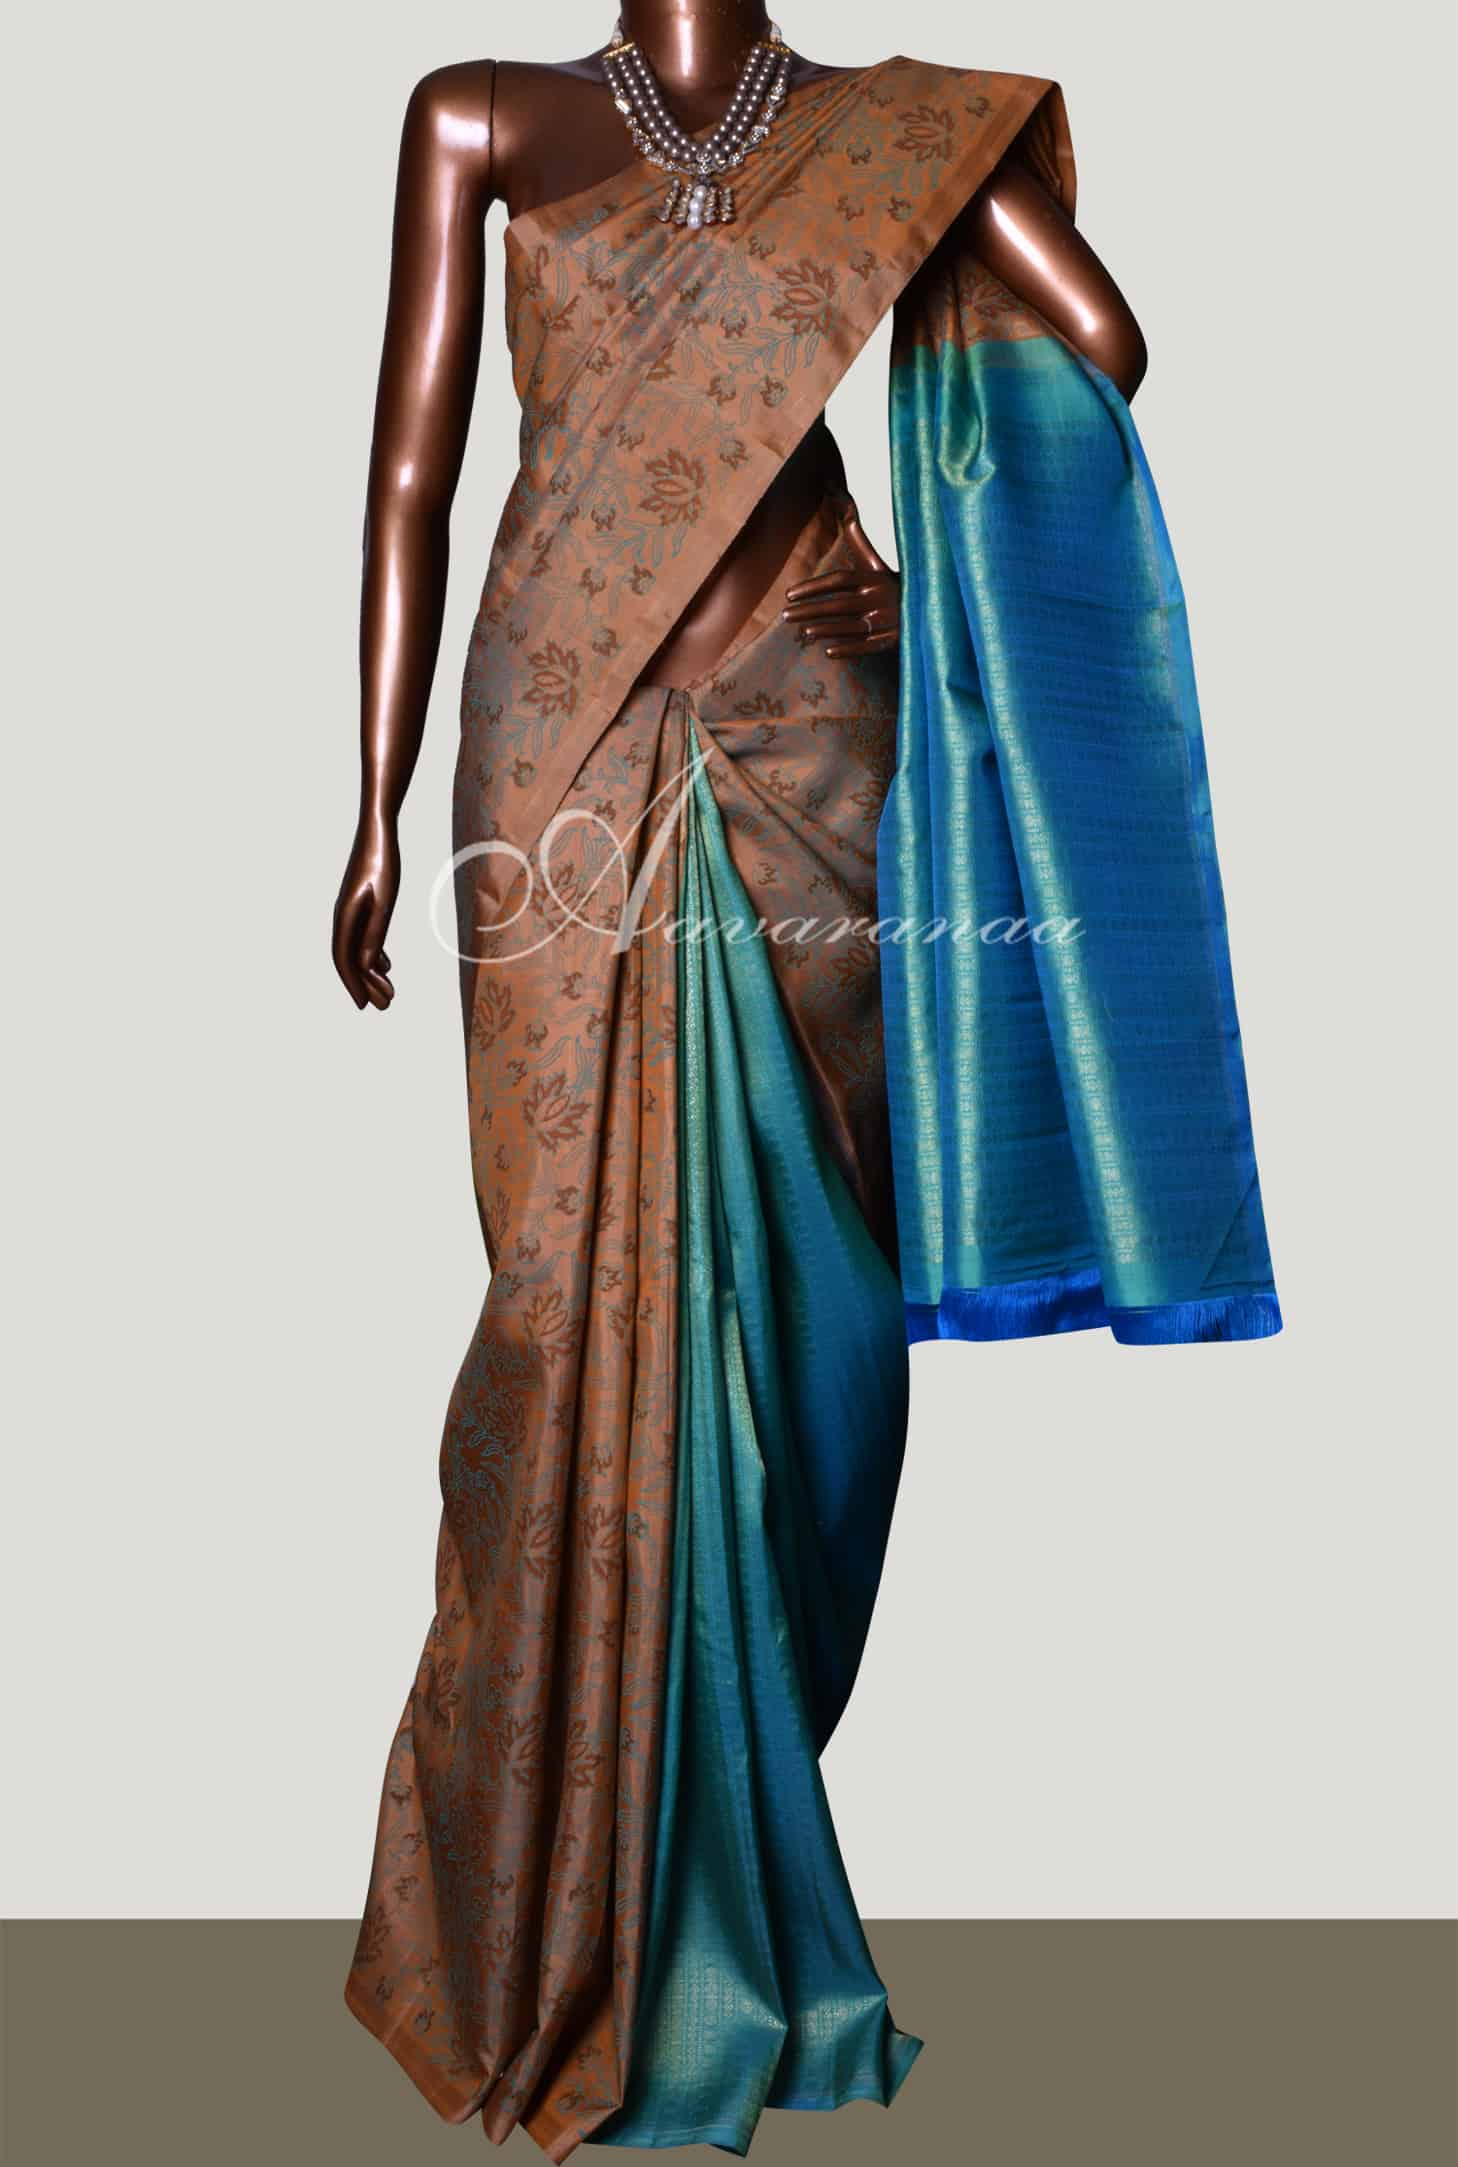 bb8a2233797 Saree Beige and blue partly pallu kanchipuram block printed saree ...